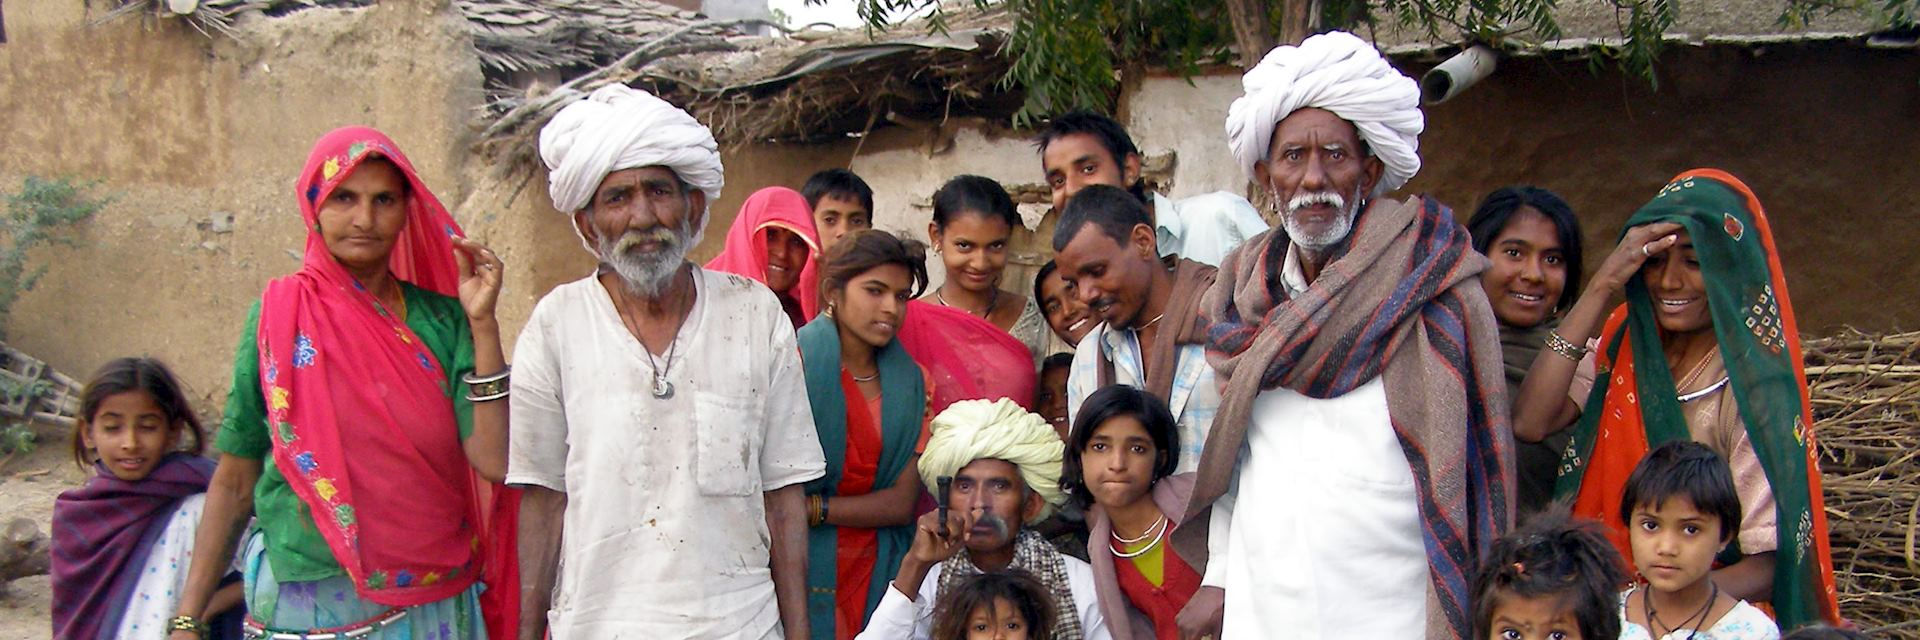 Villagers in Barli